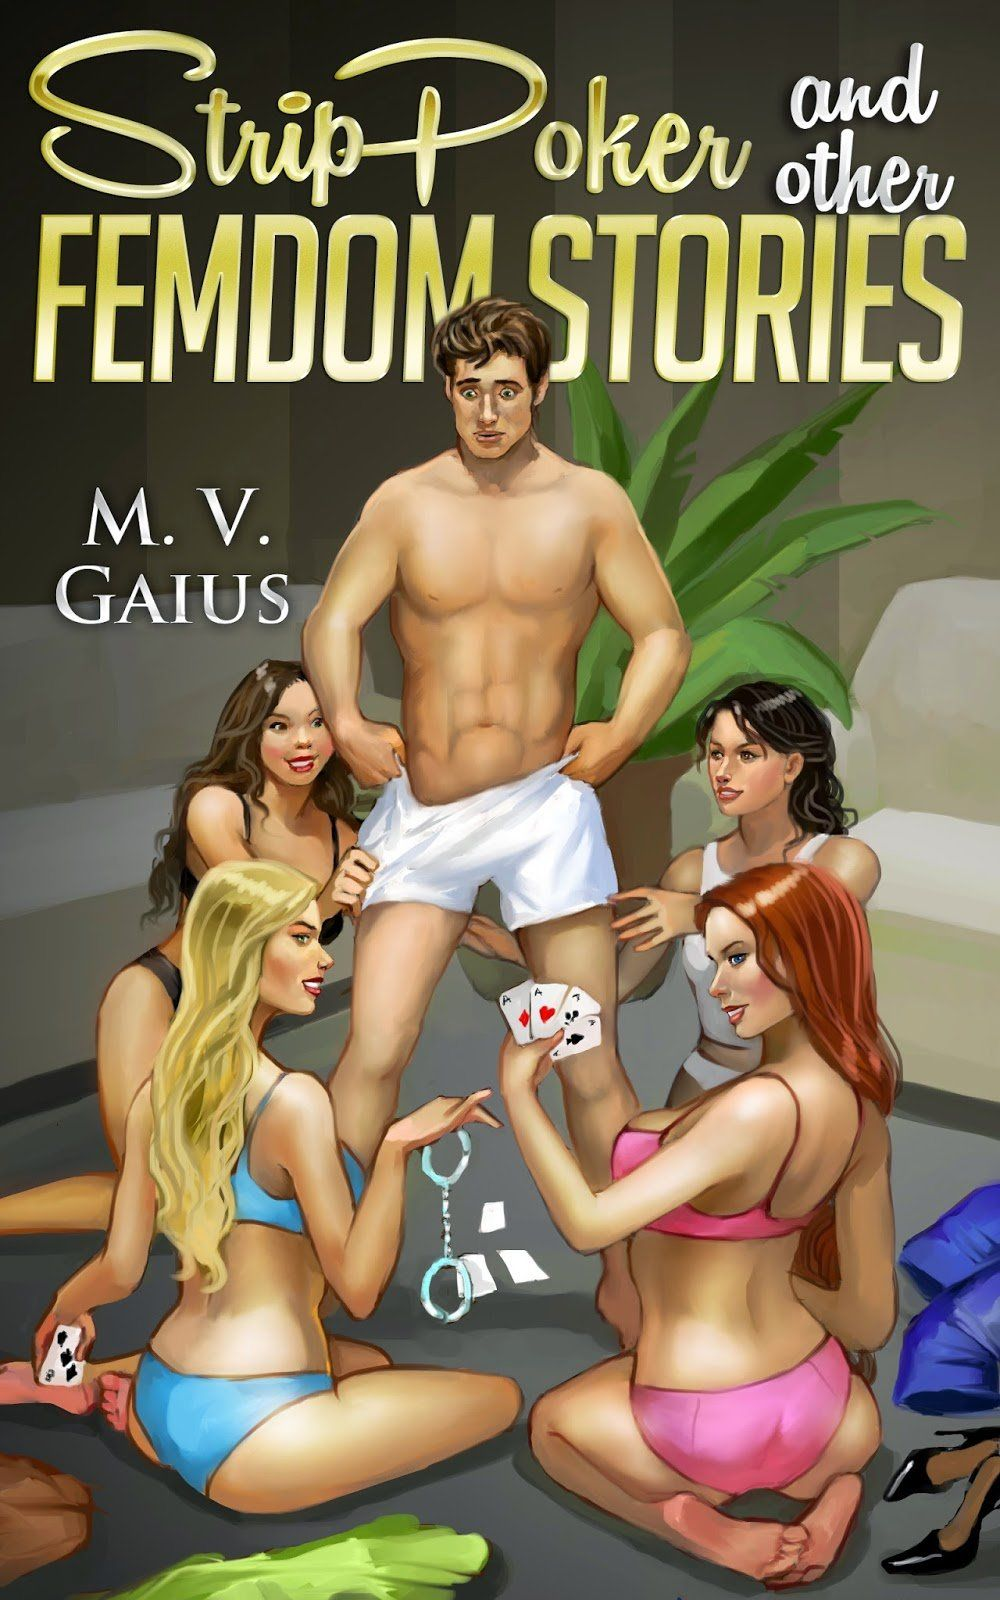 Black P. recomended Young cfnm femdom stories